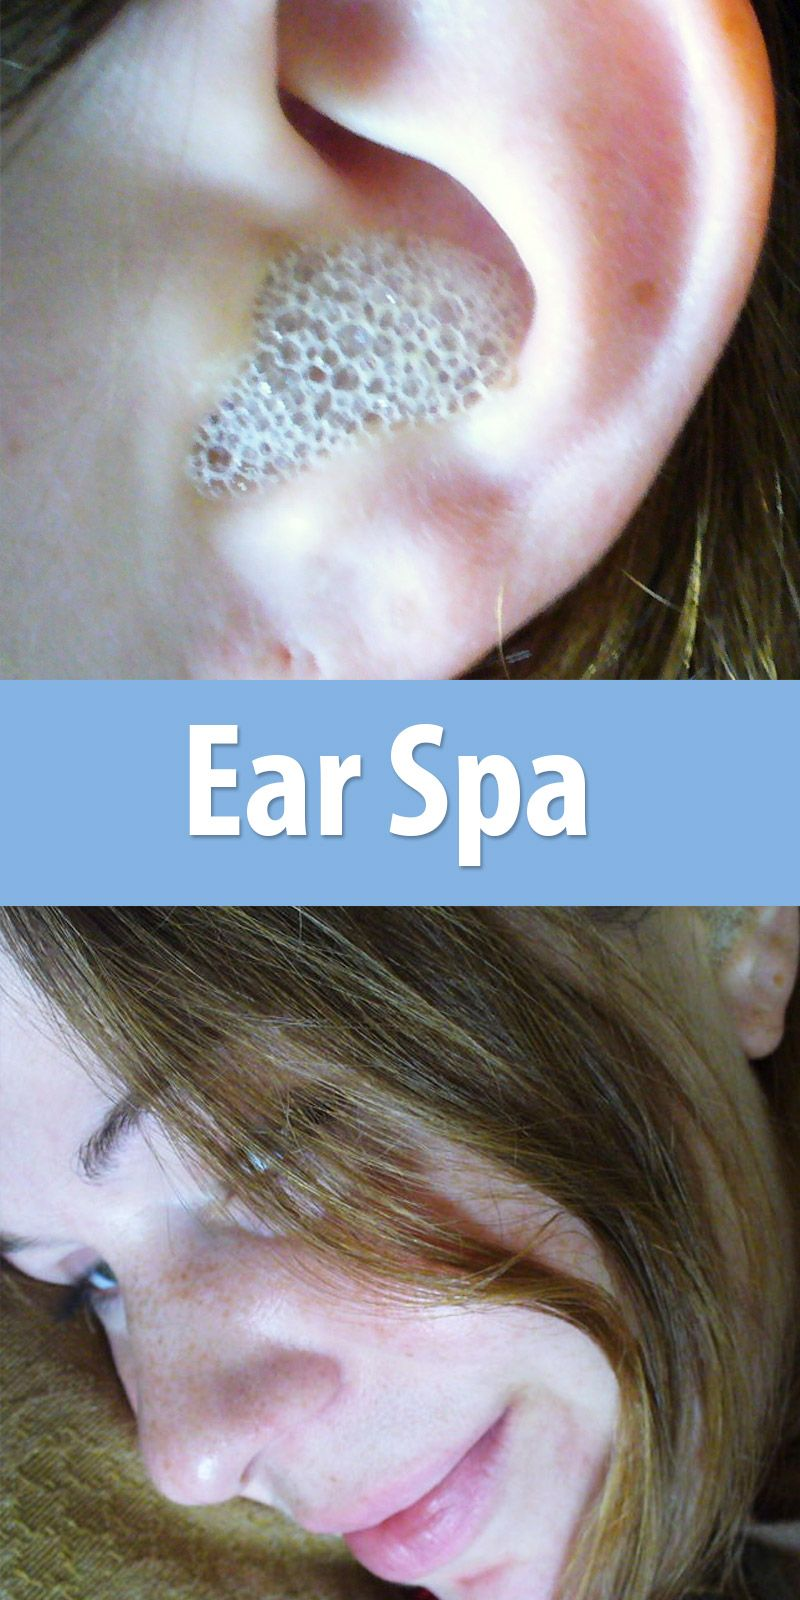 Ear spa ear wax hydrogen peroxide and remedies ear wax hair bugs sand and bacteria cause itchy gross ears solutioingenieria Images